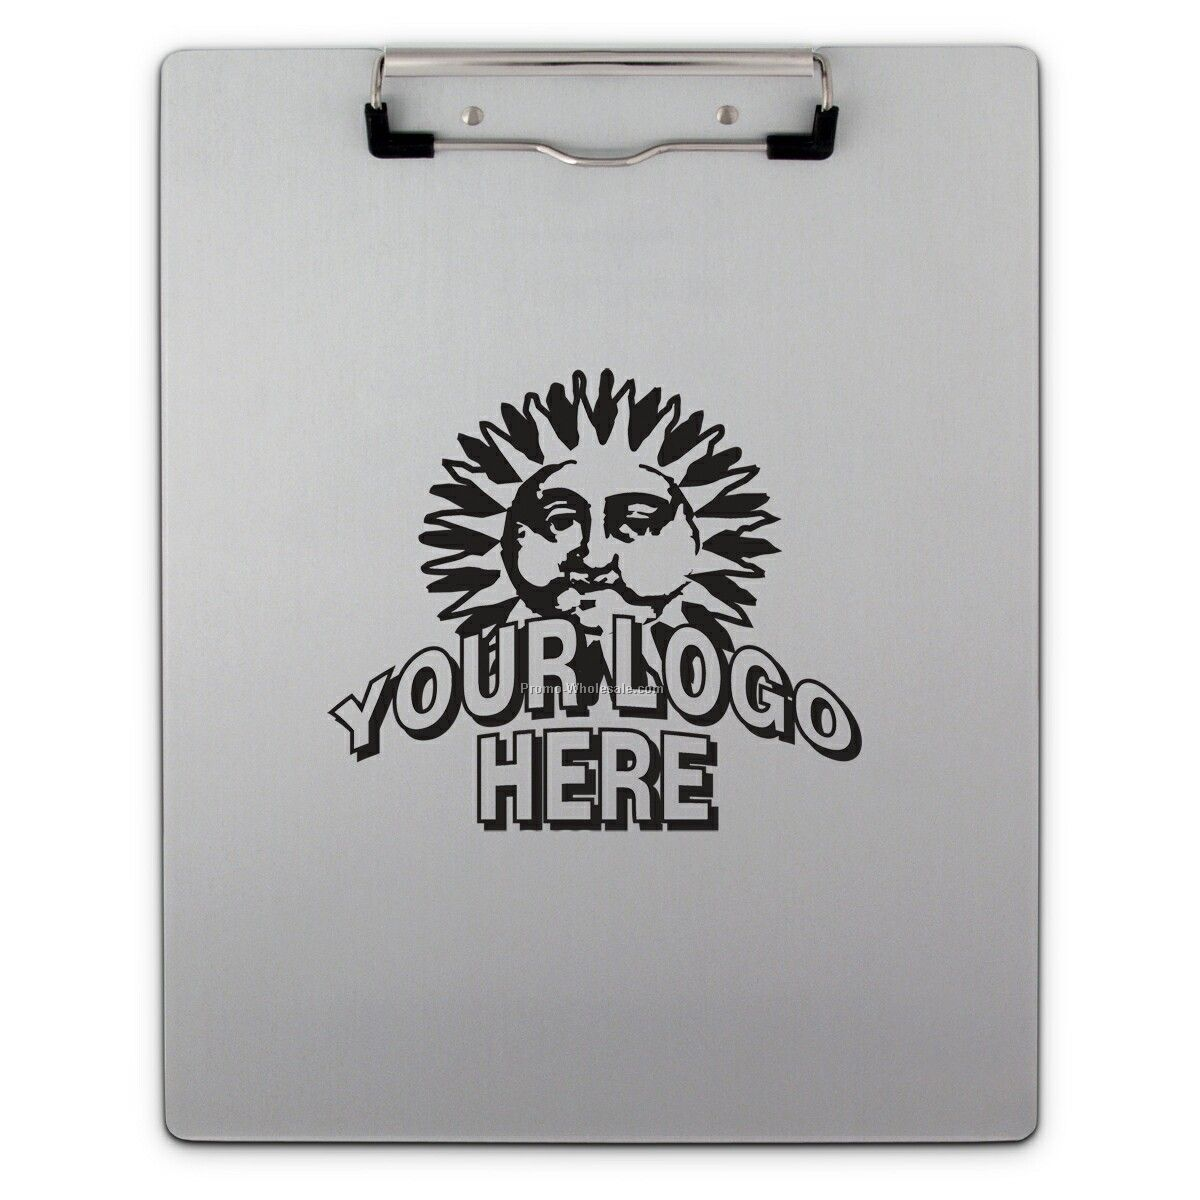 Aluminum Letter Size Clipboard With Low Profile Clip